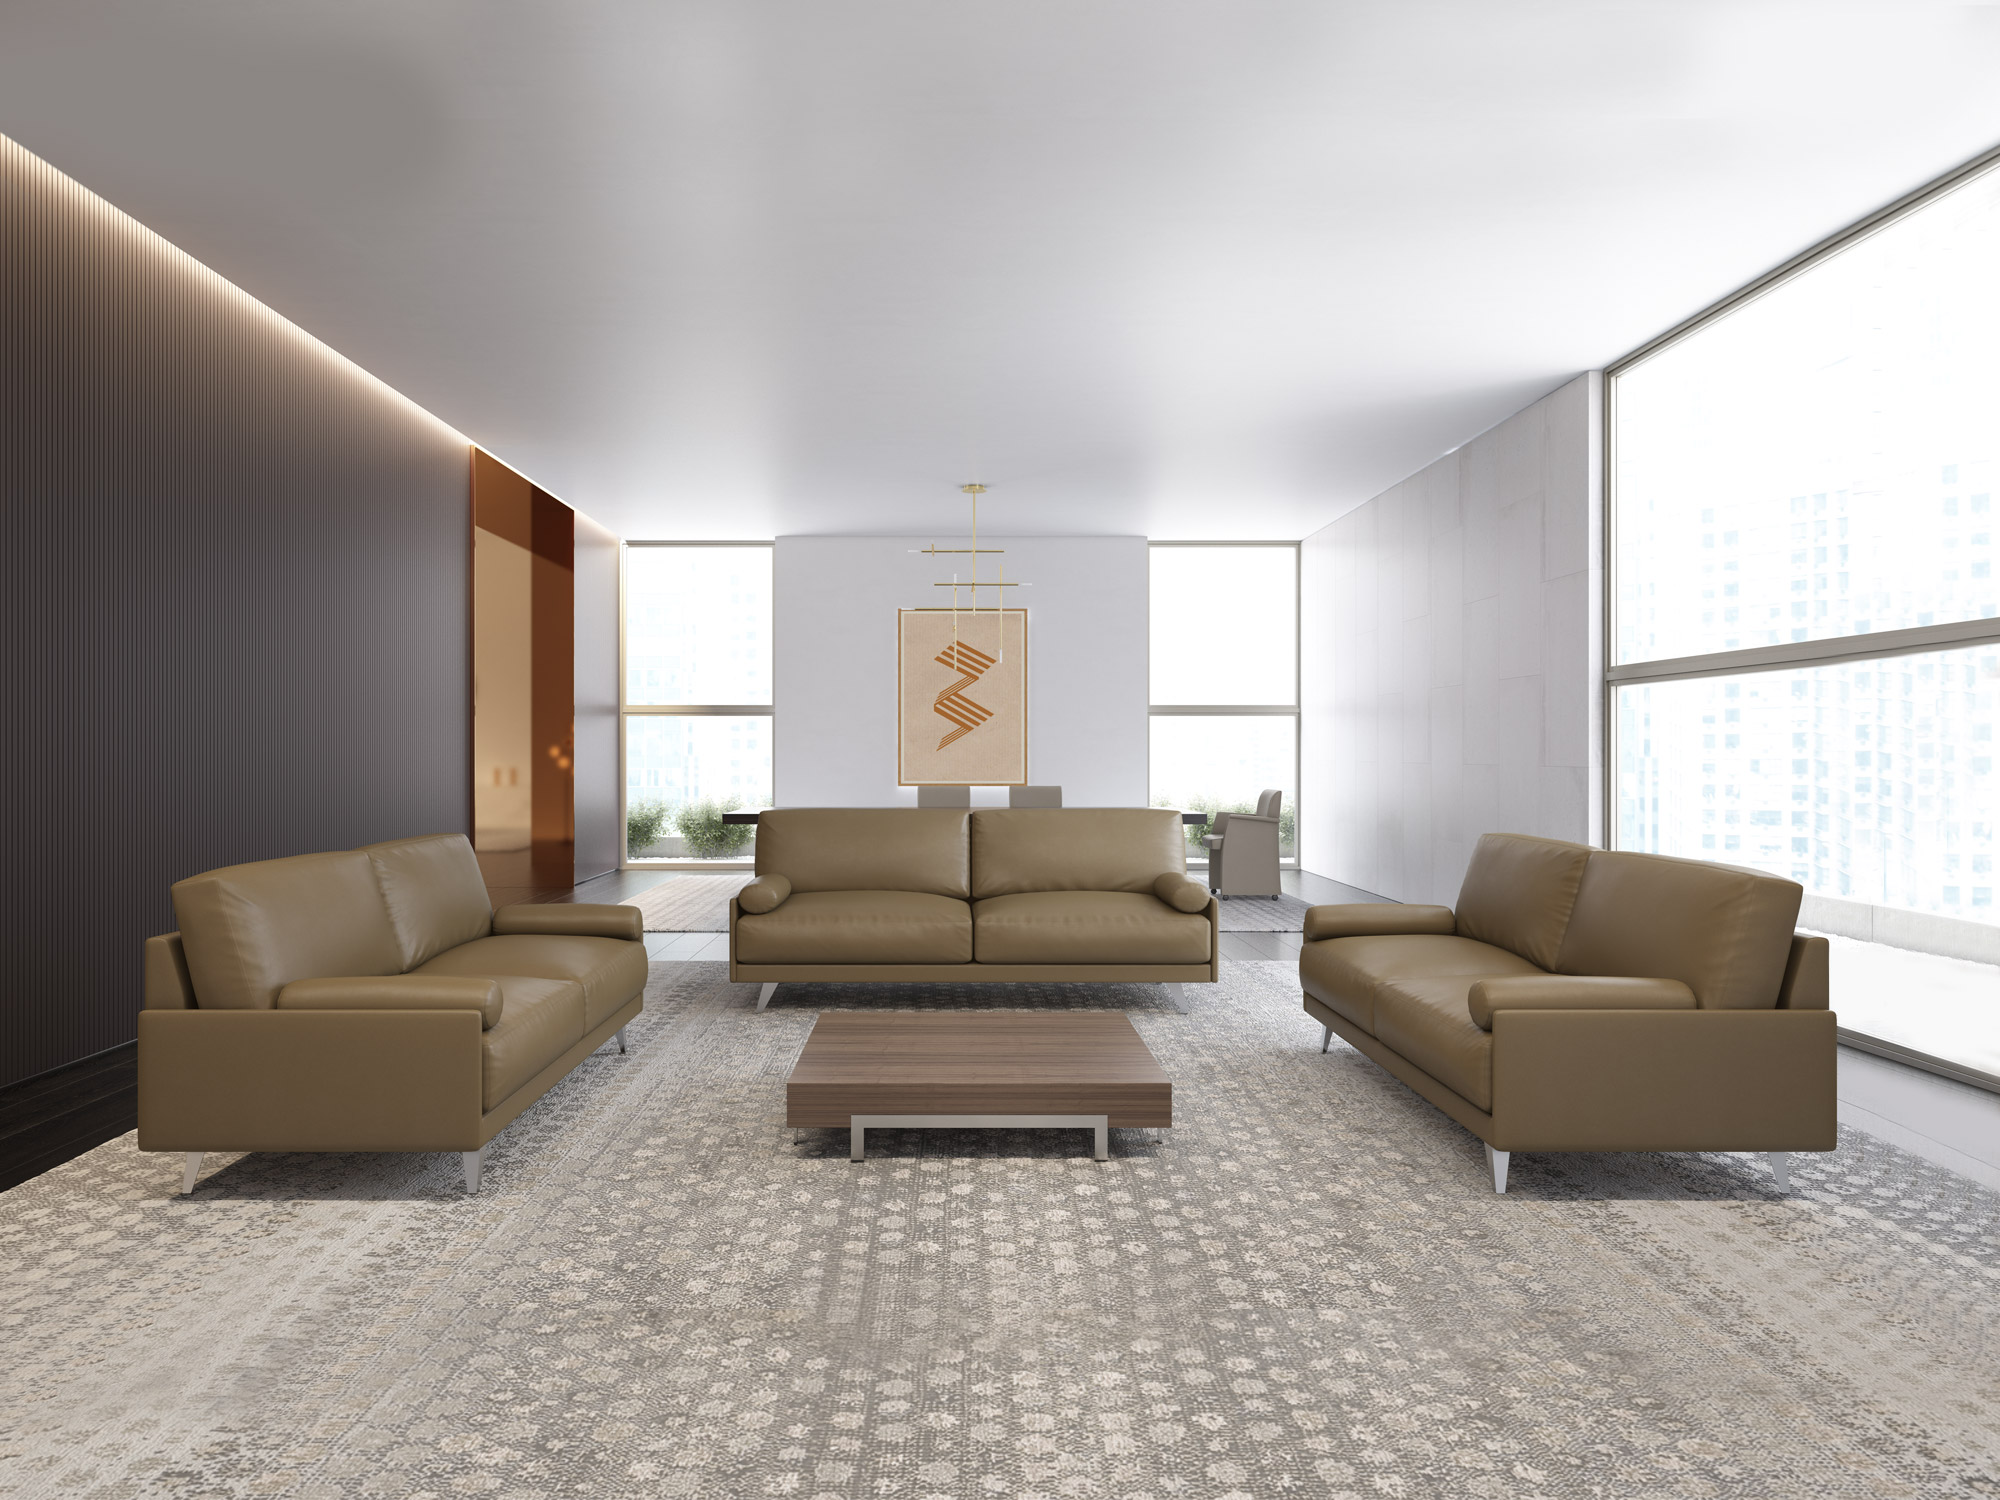 Paul_Modern-waiting-room-furniture